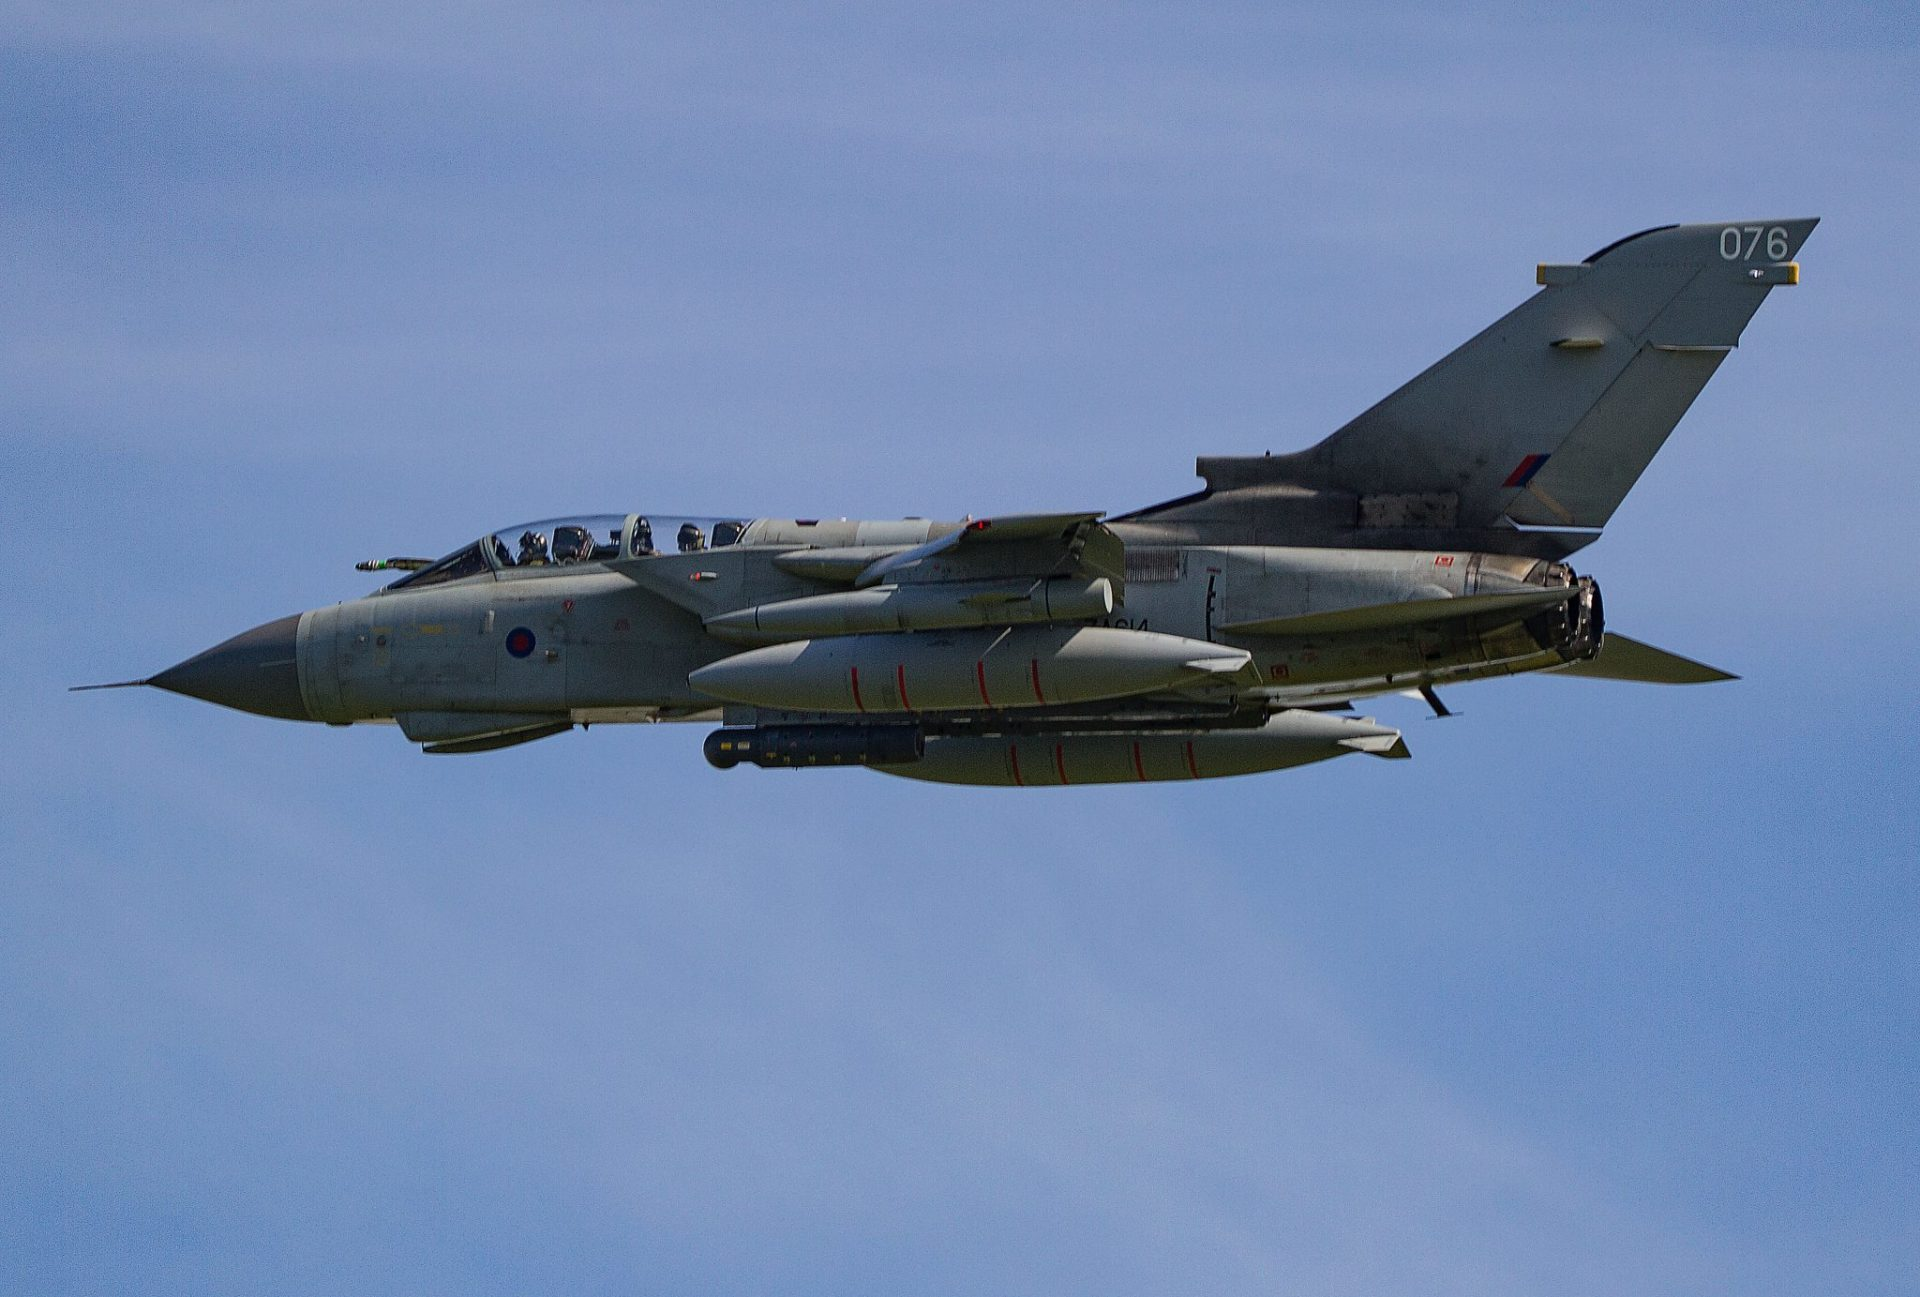 Cosford Air Show (Image: Pete Harrison)